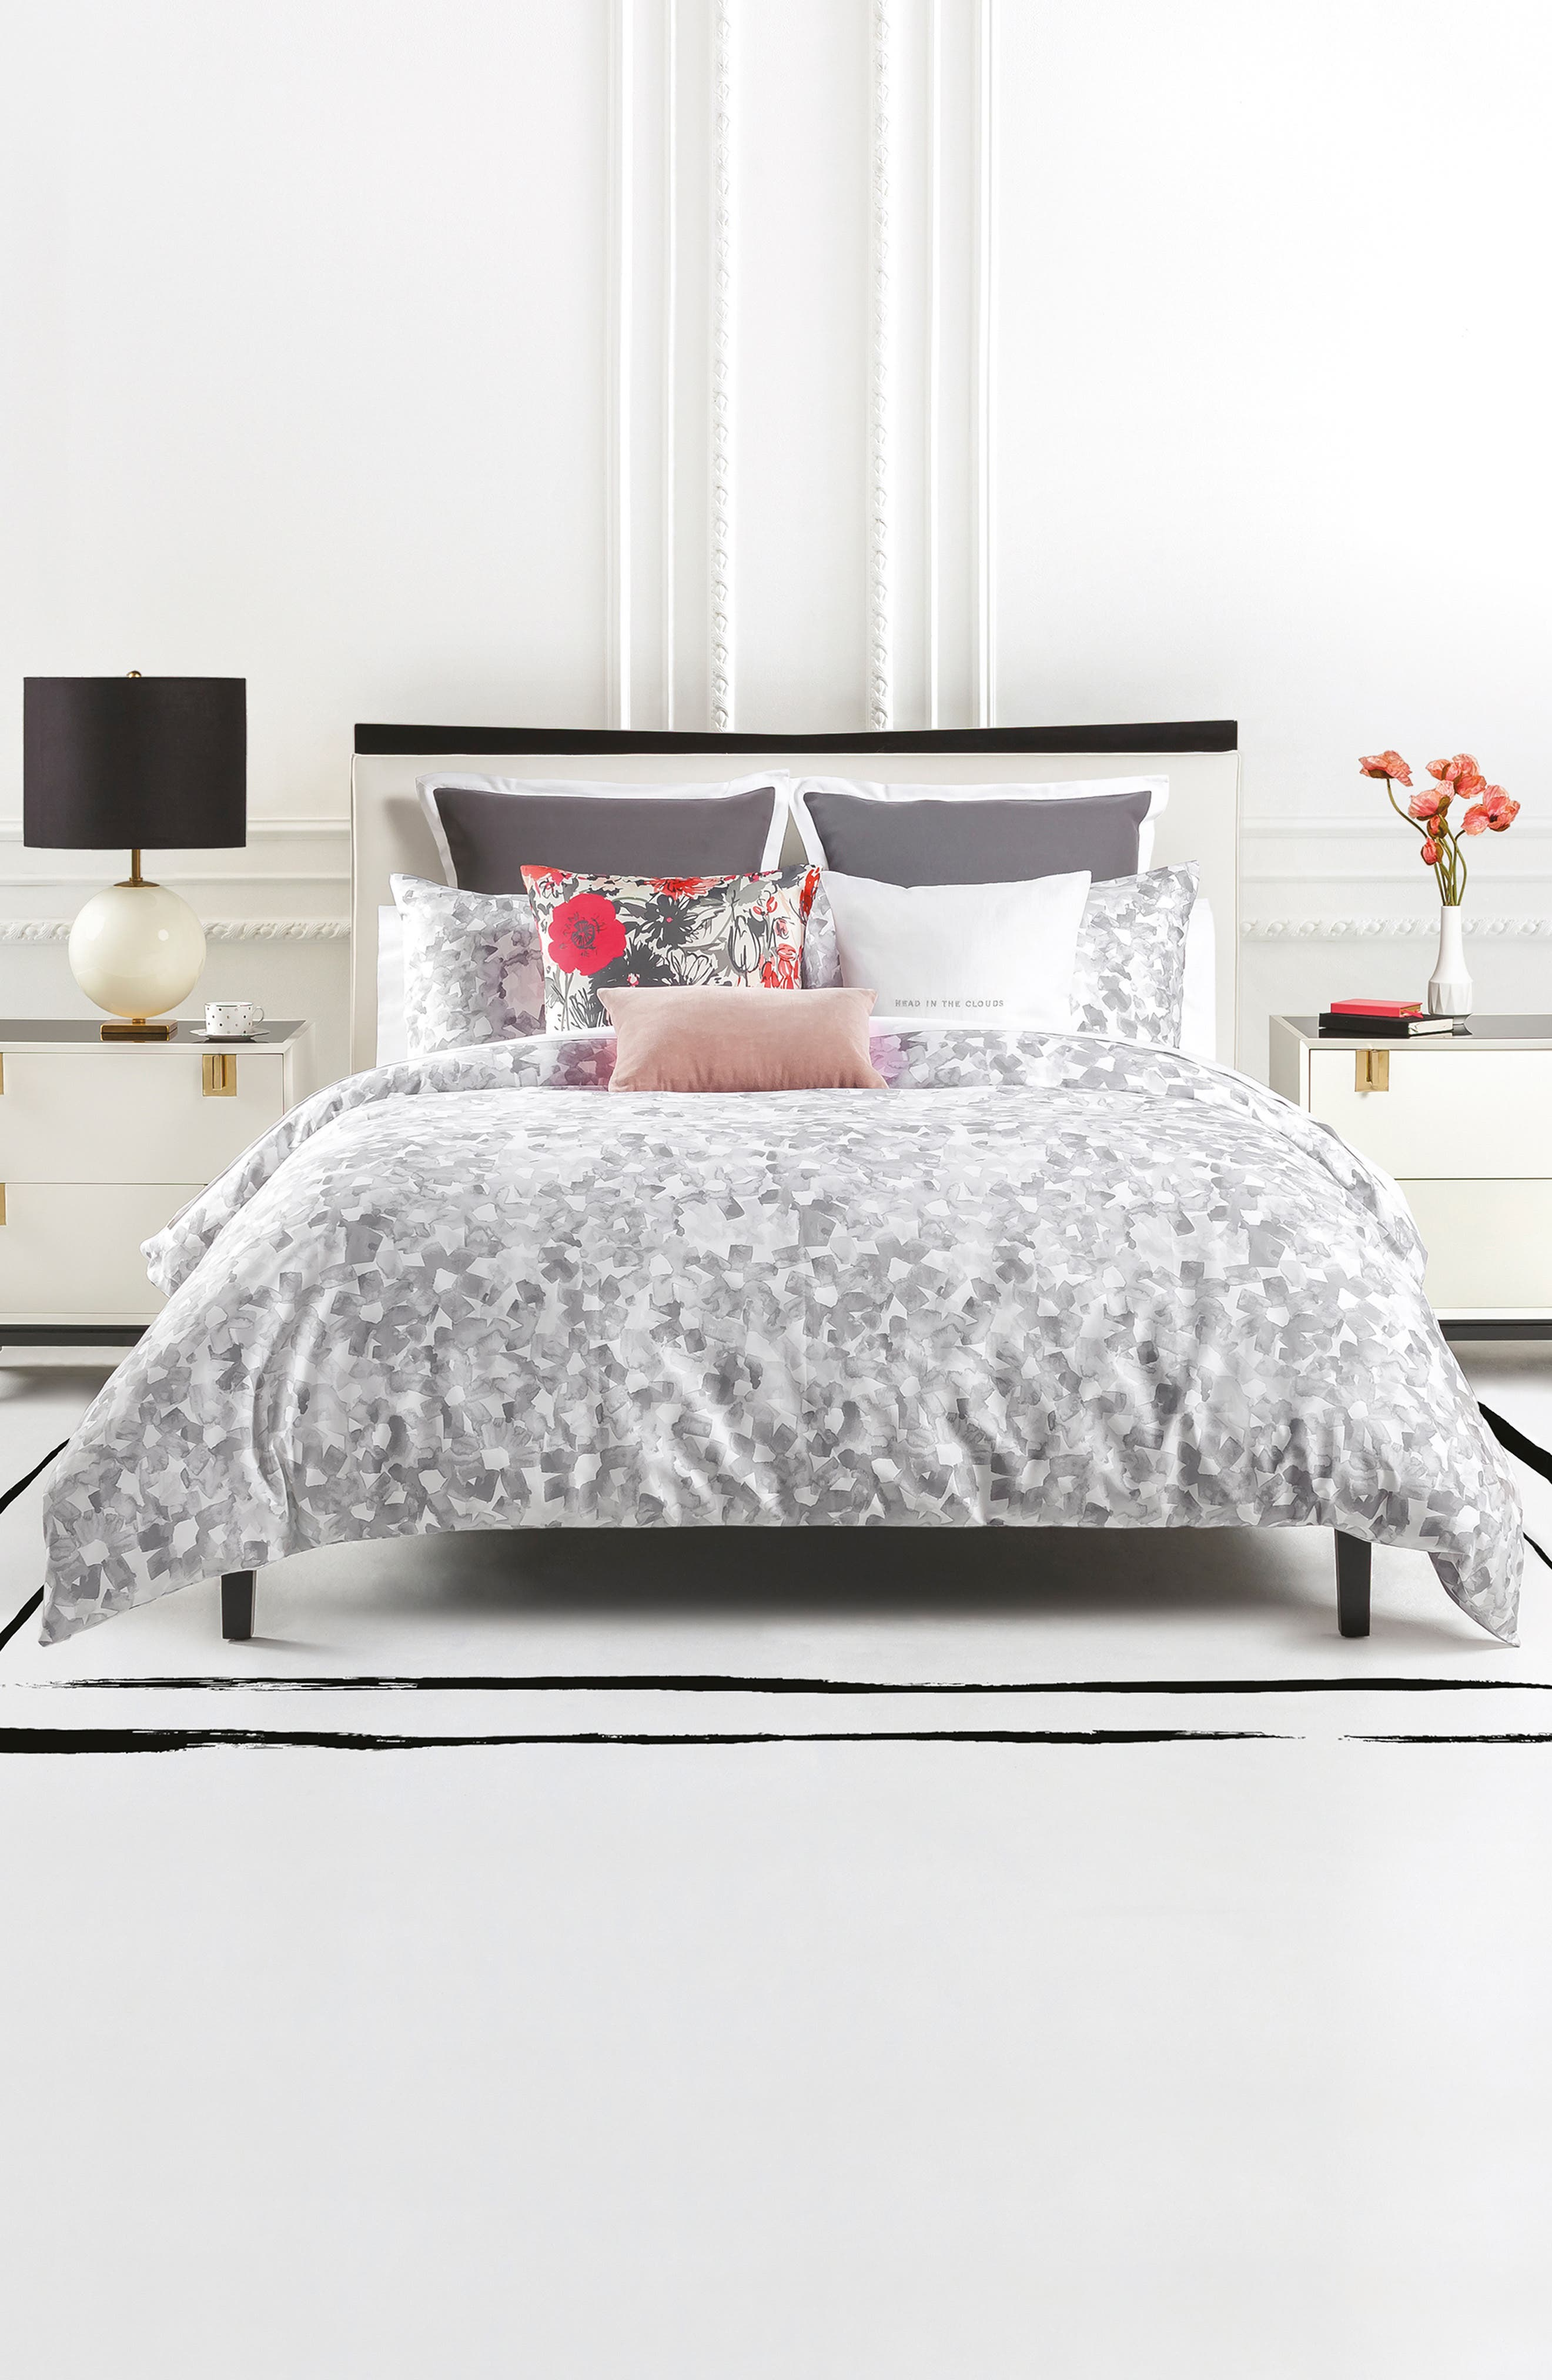 Kate Spade New York Inky Floral Comforter  Sham Set Size Twin  Grey